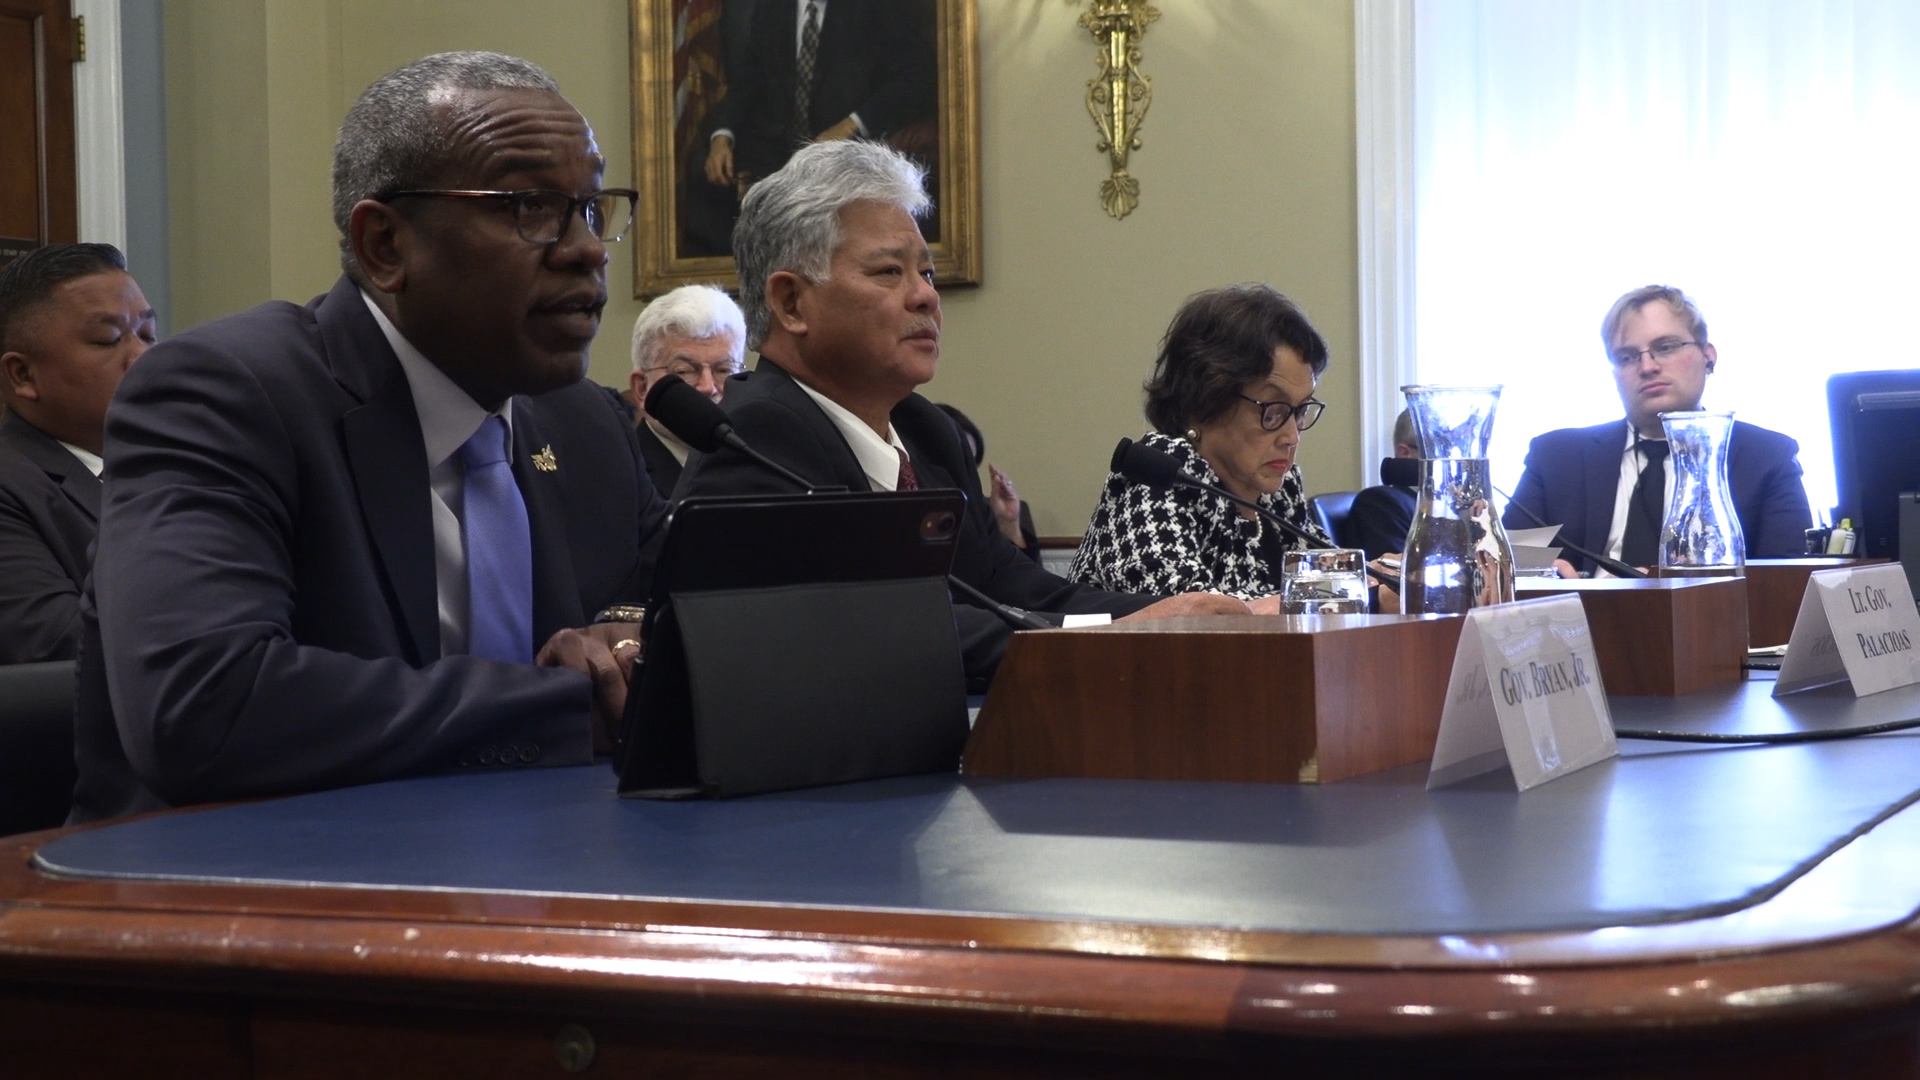 Gov. Bryan testifies on Capitol Hill, wraps up week in D.C.